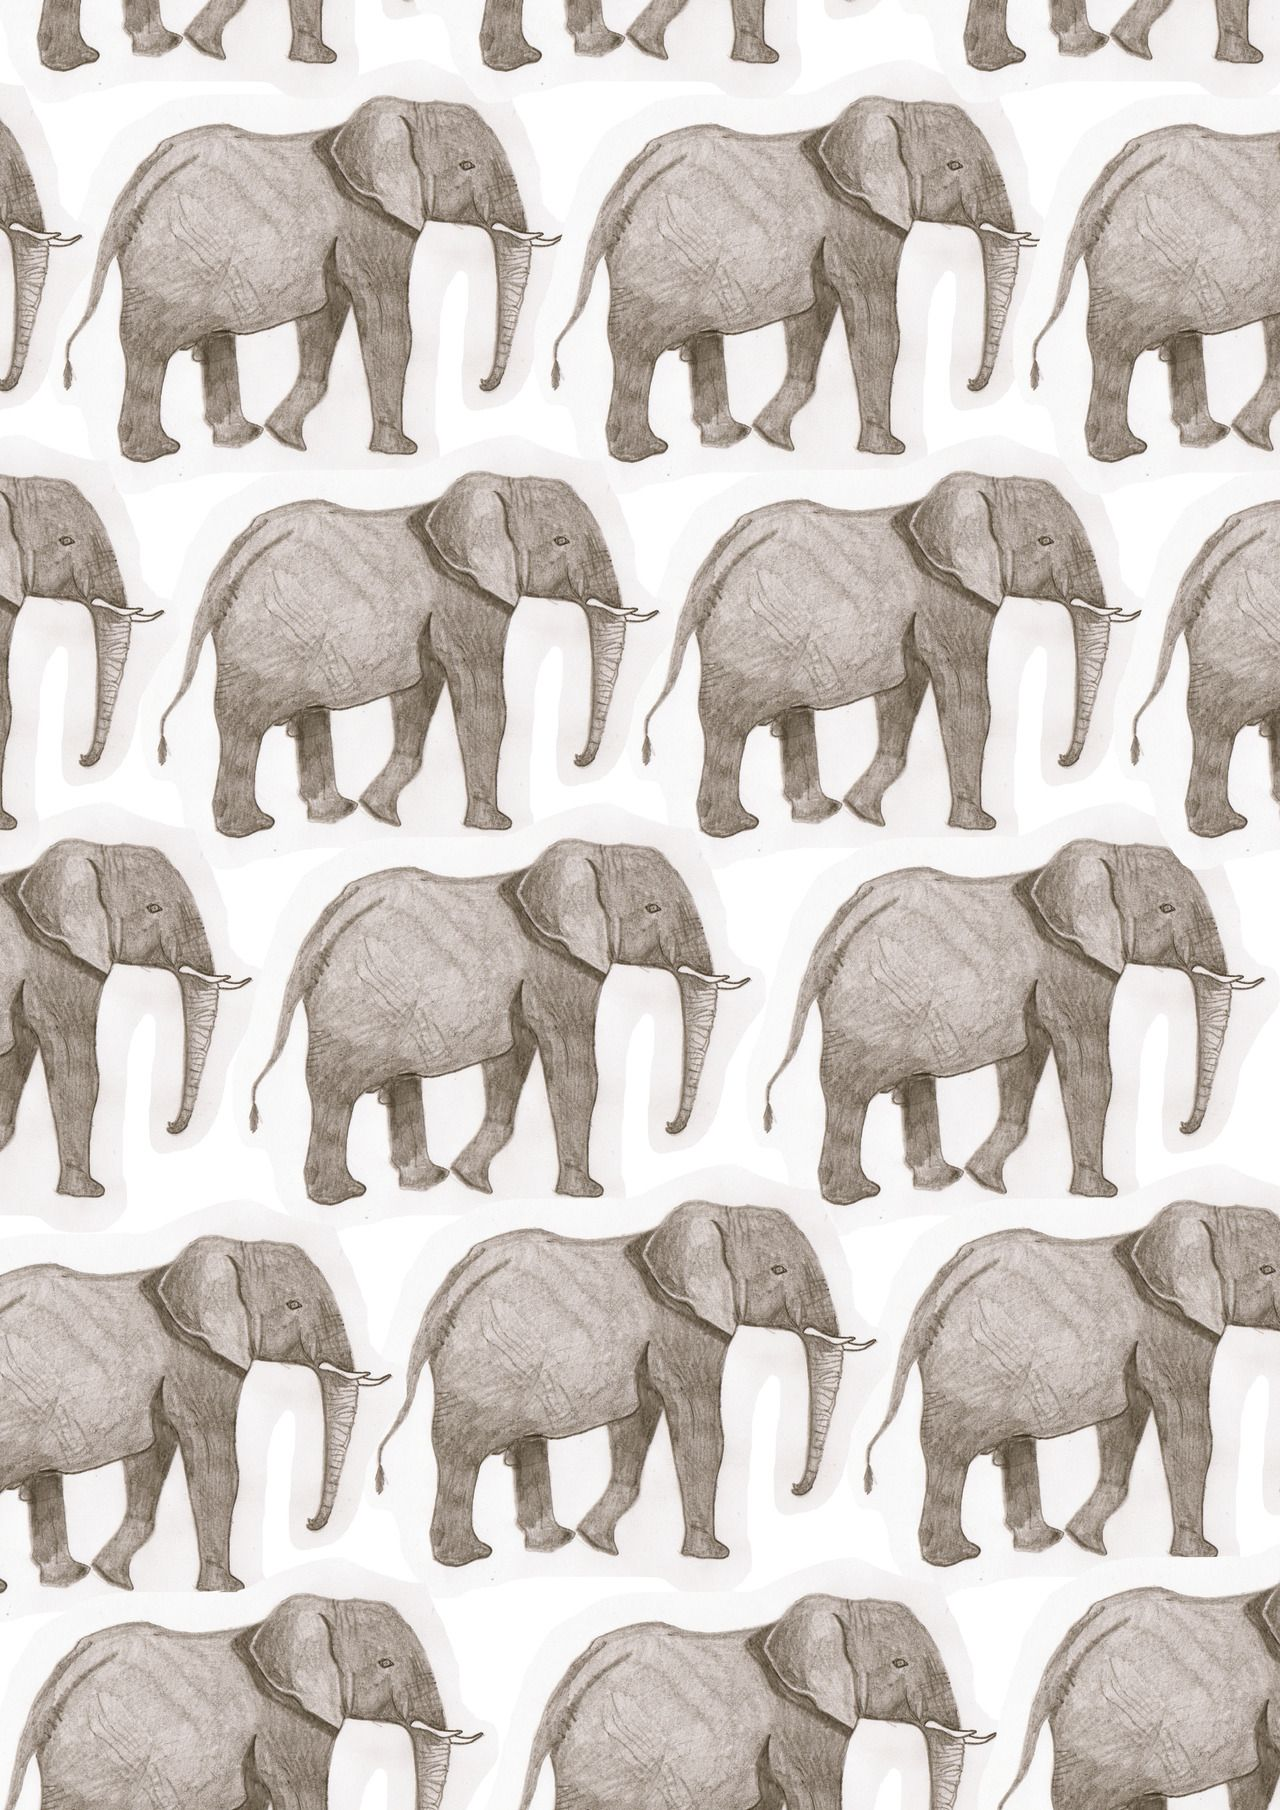 Elephant iphone wallpaper tumblr - Doodoodloo I Used An Illustration I Did In Year 12 To Make Elephant Wallpaper